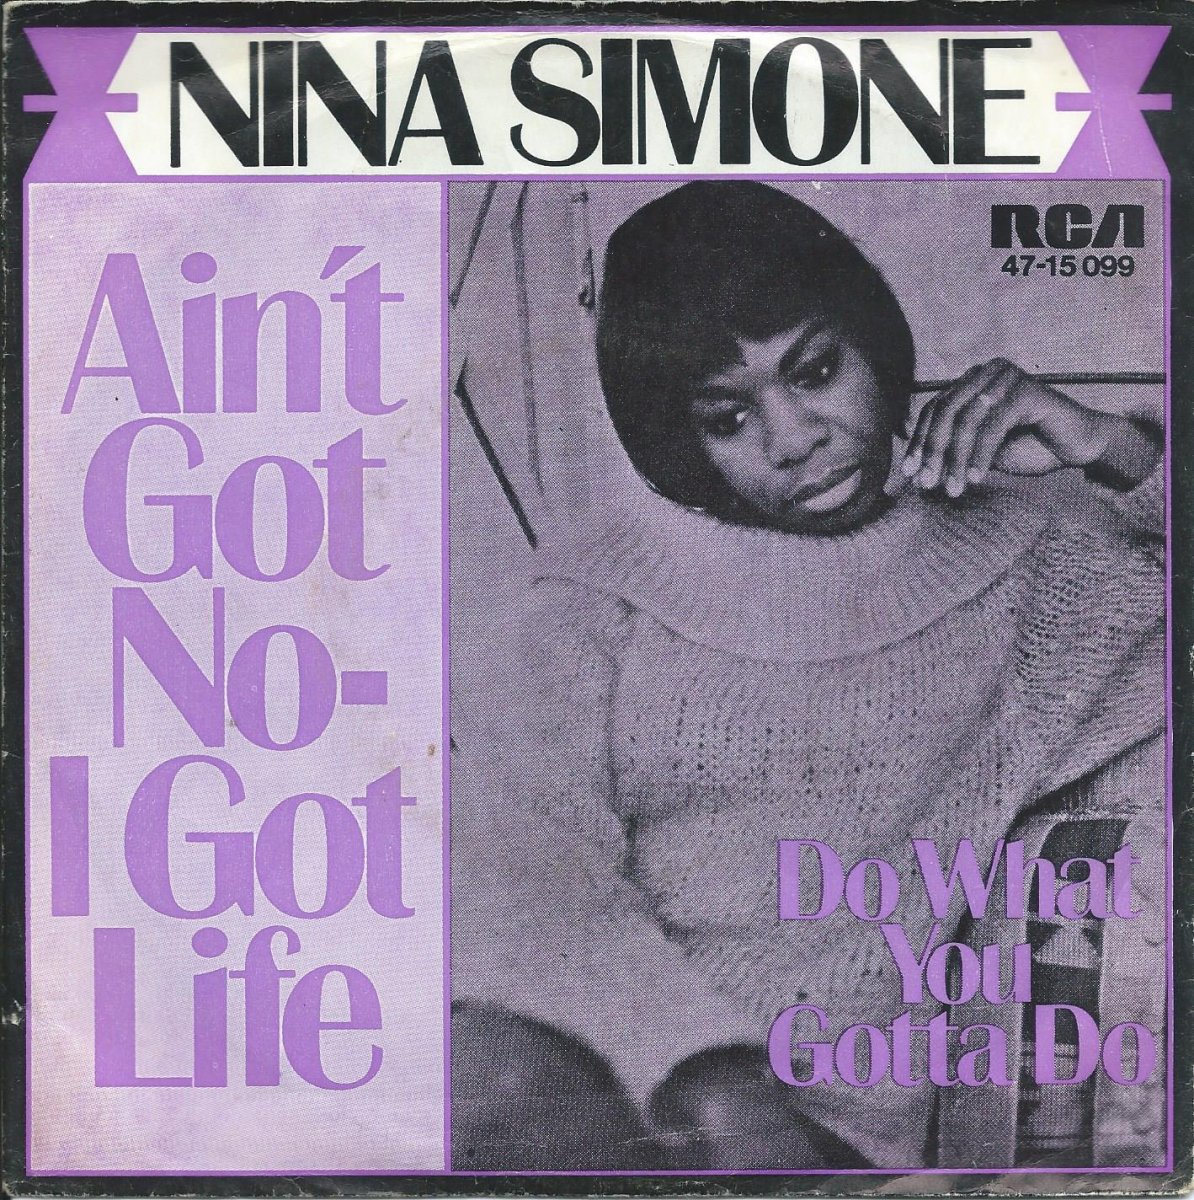 NINA SIMONE ‎/ AIN'T GOT NO - I GOT LIFE / DO WHAT YOU GOTTA DO (7